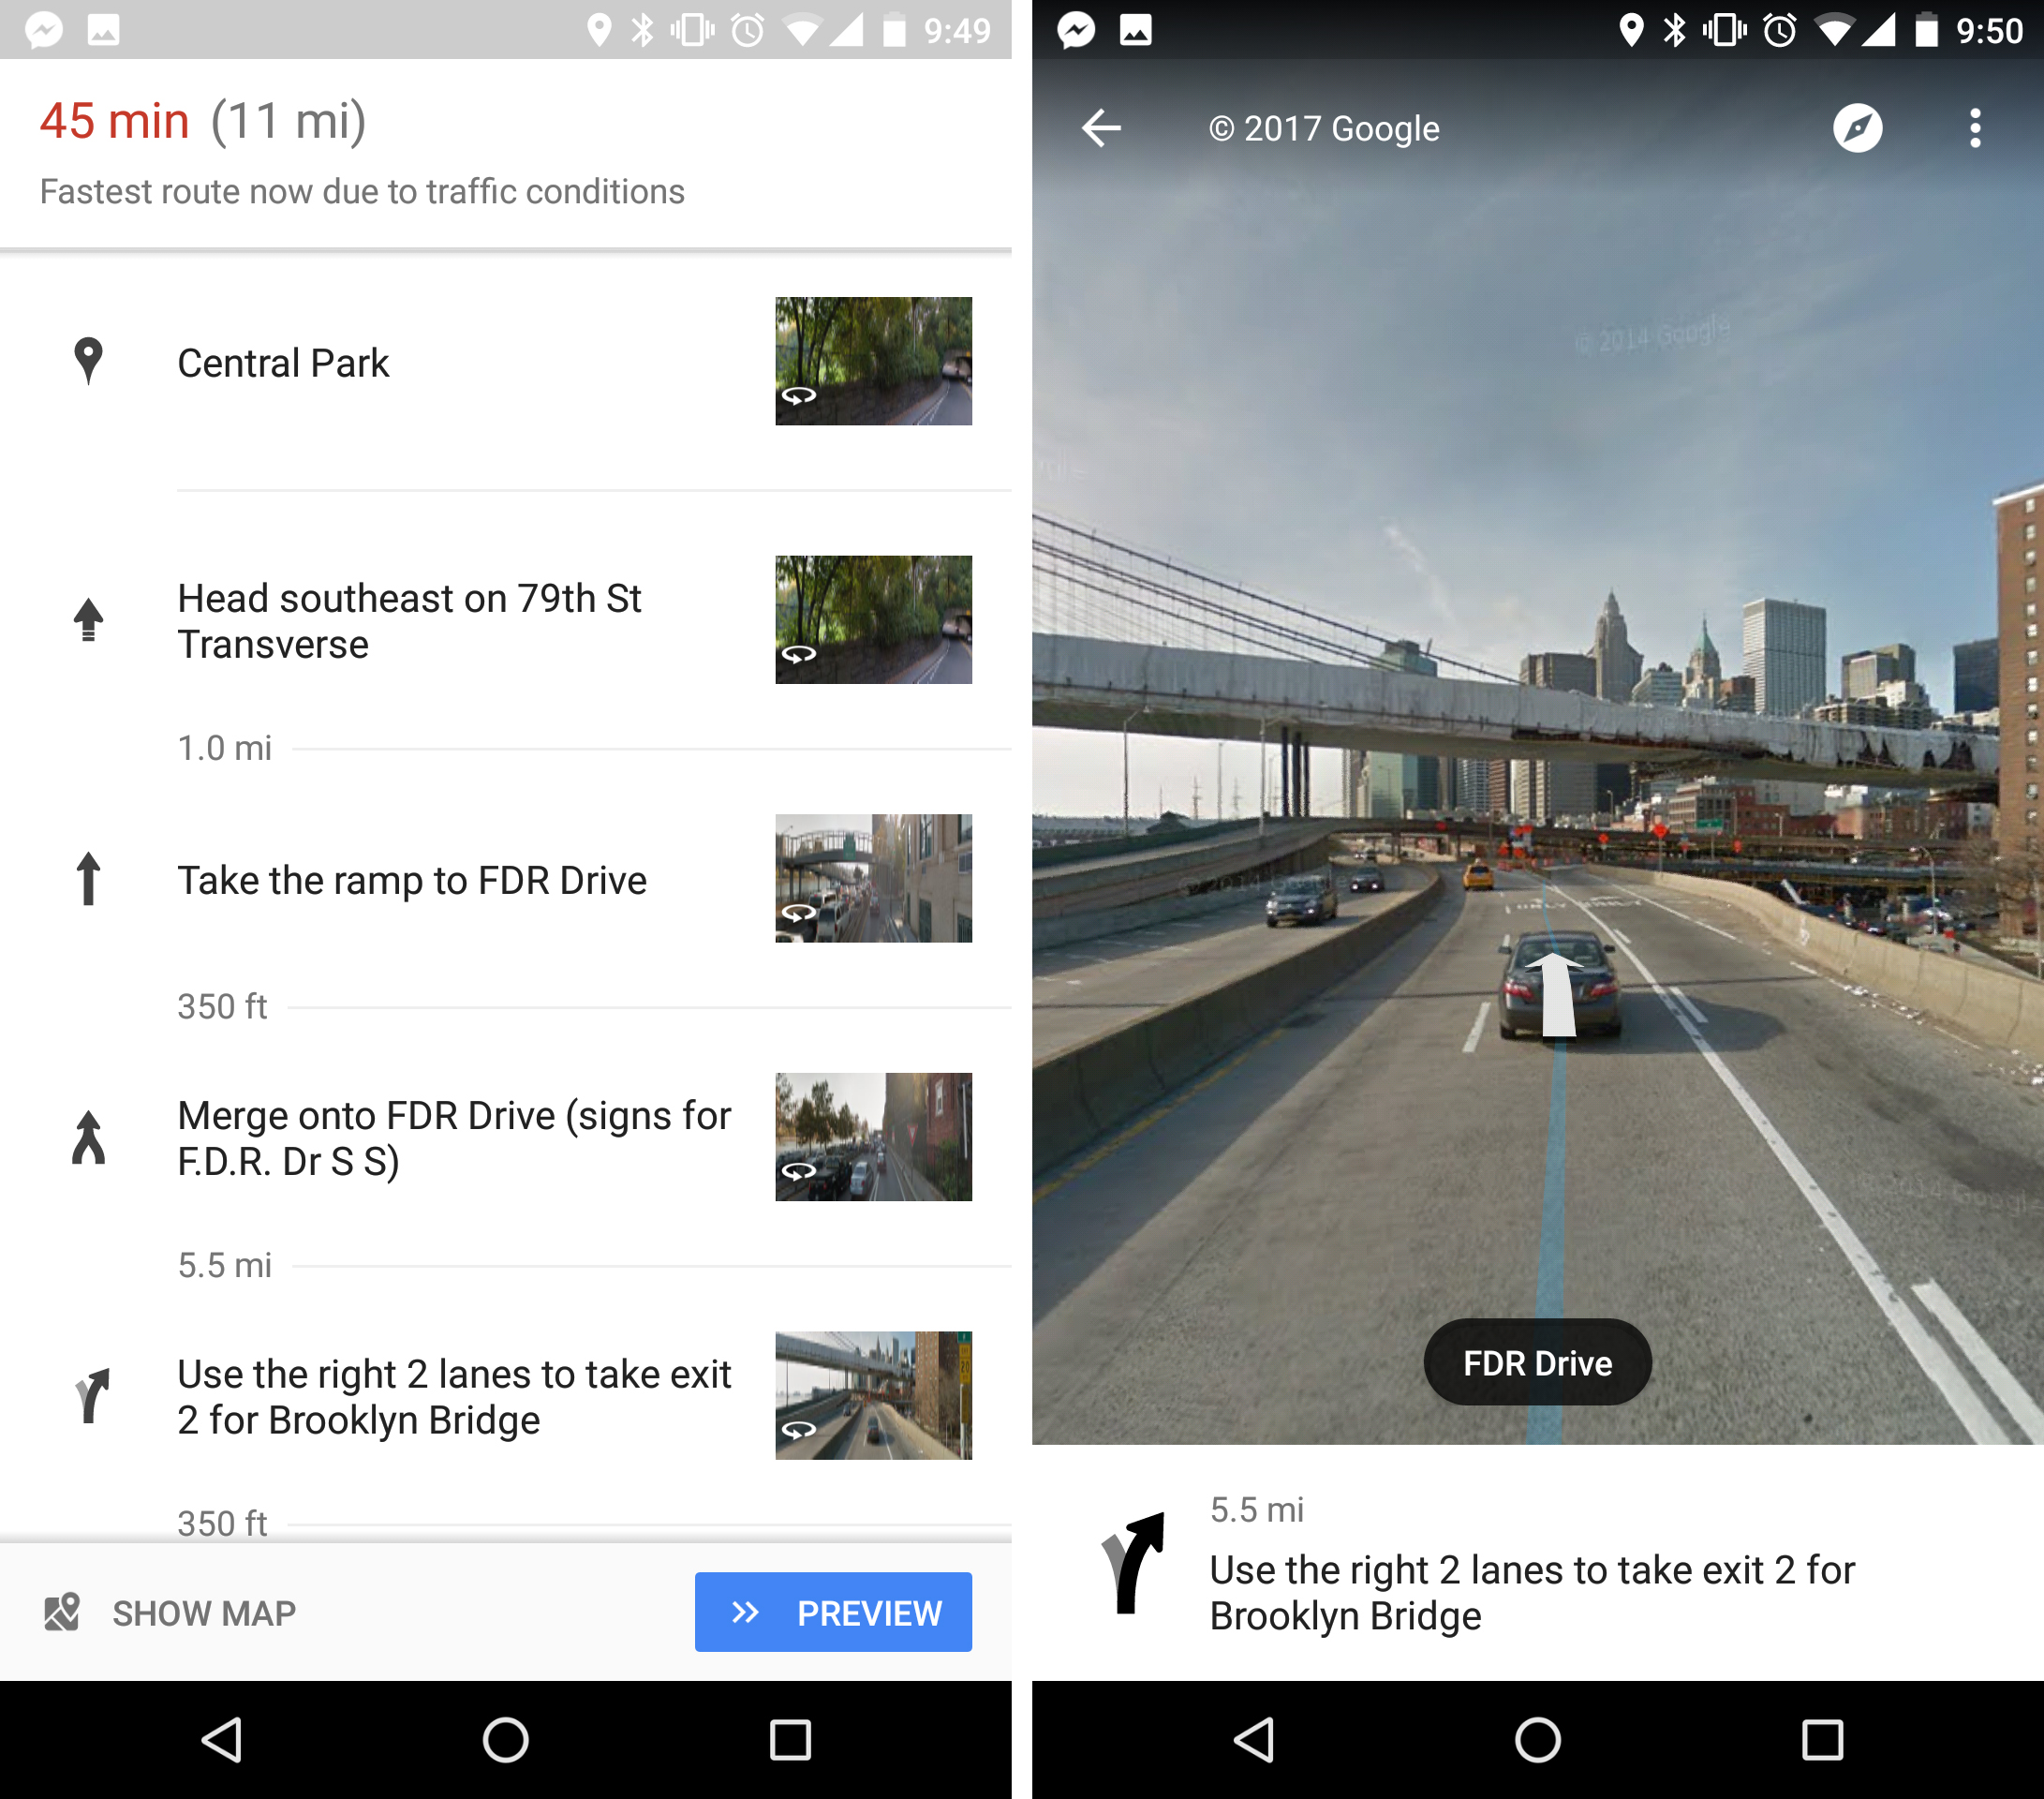 Google Maps now shows Street View for those important turns